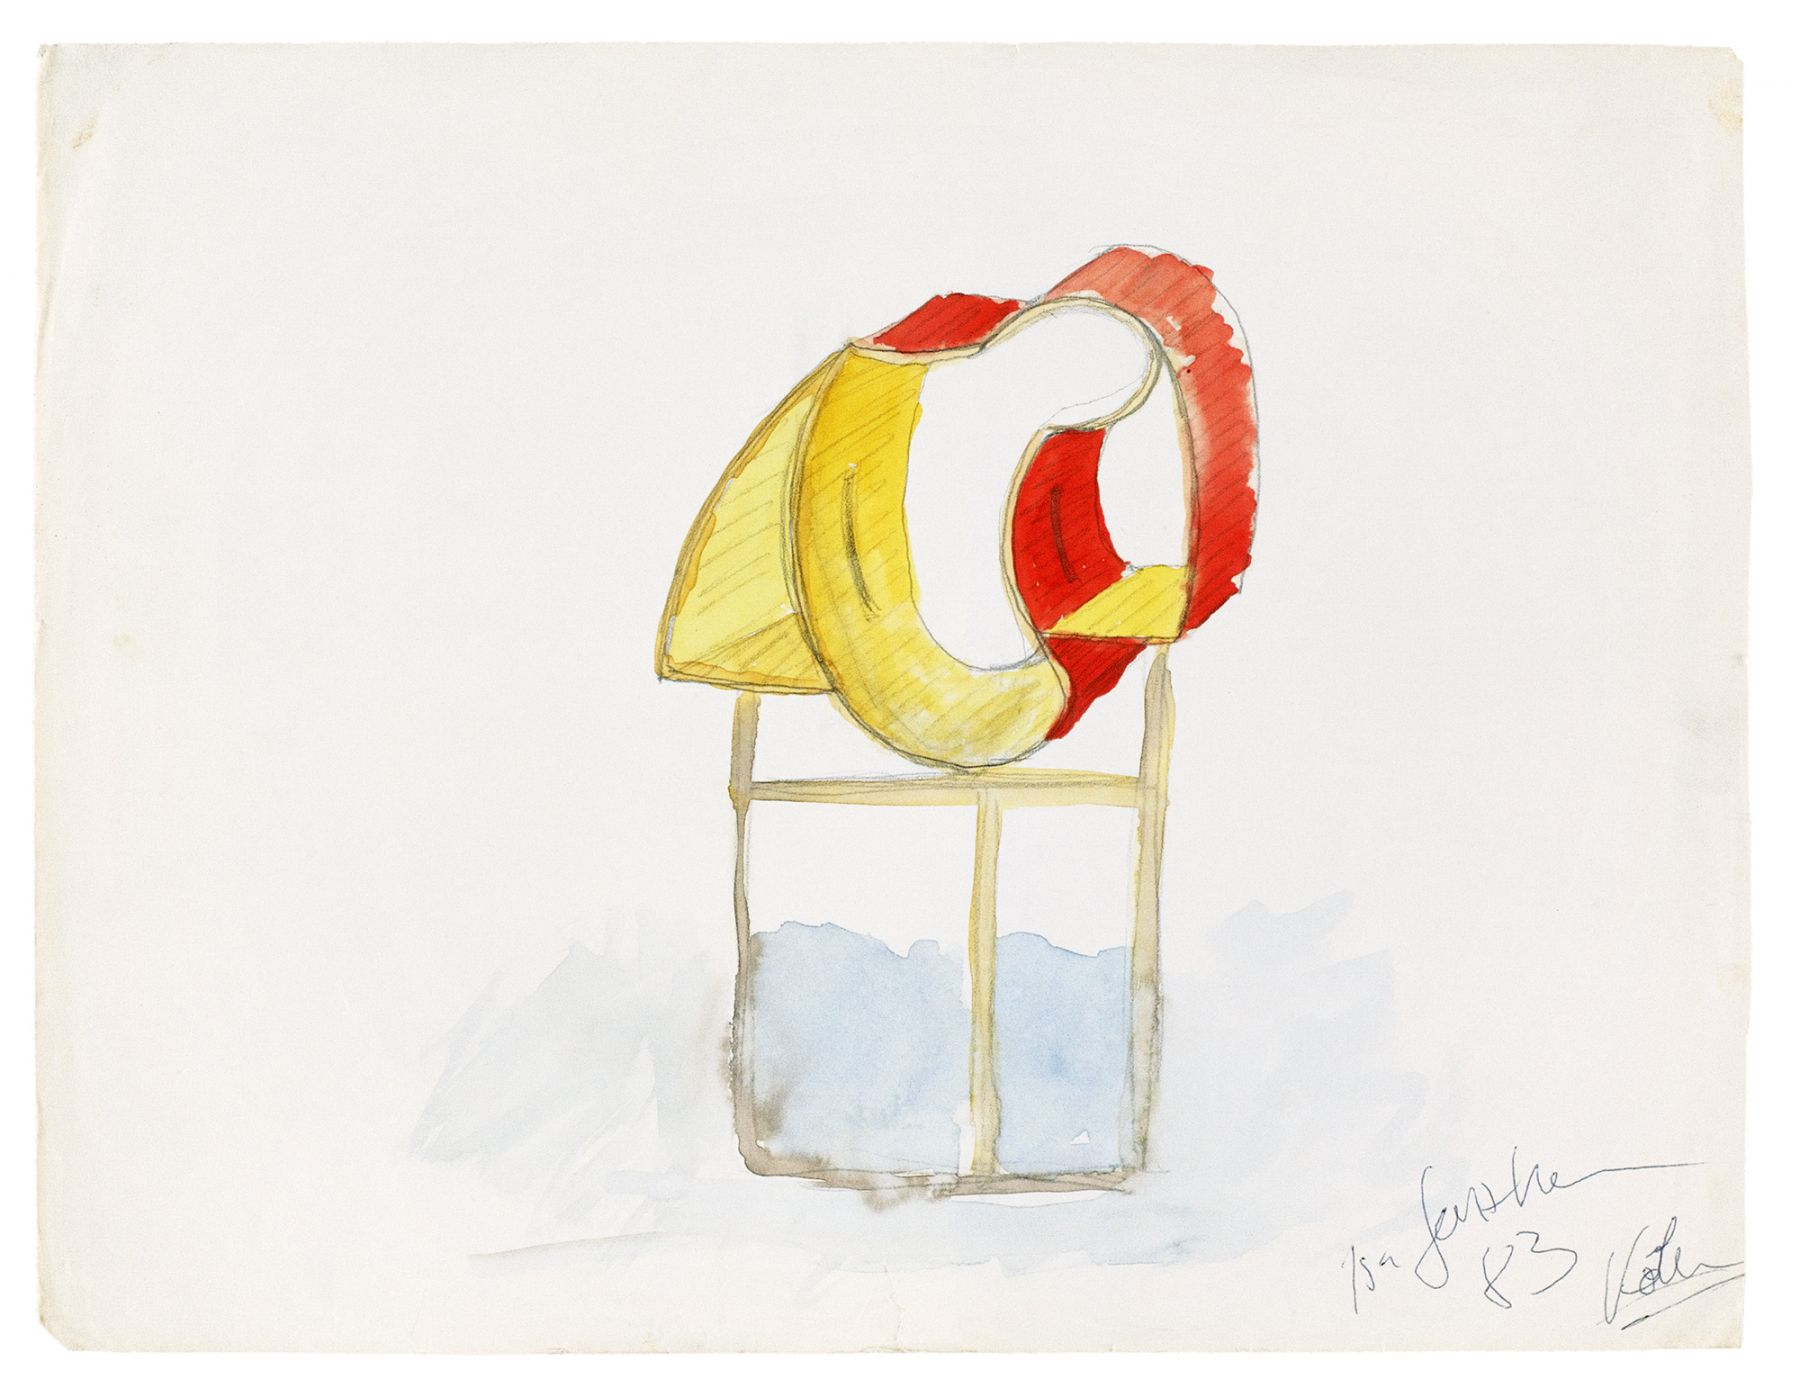 Isa Genzken Untitled, 1983 Watercolor and pencil on cardboard Board: 9 1/2 x 12 1/2 inches (24.1 x 31.8 cm) Frame: 12 x 15 inches (30.5 x 38.1 cm)